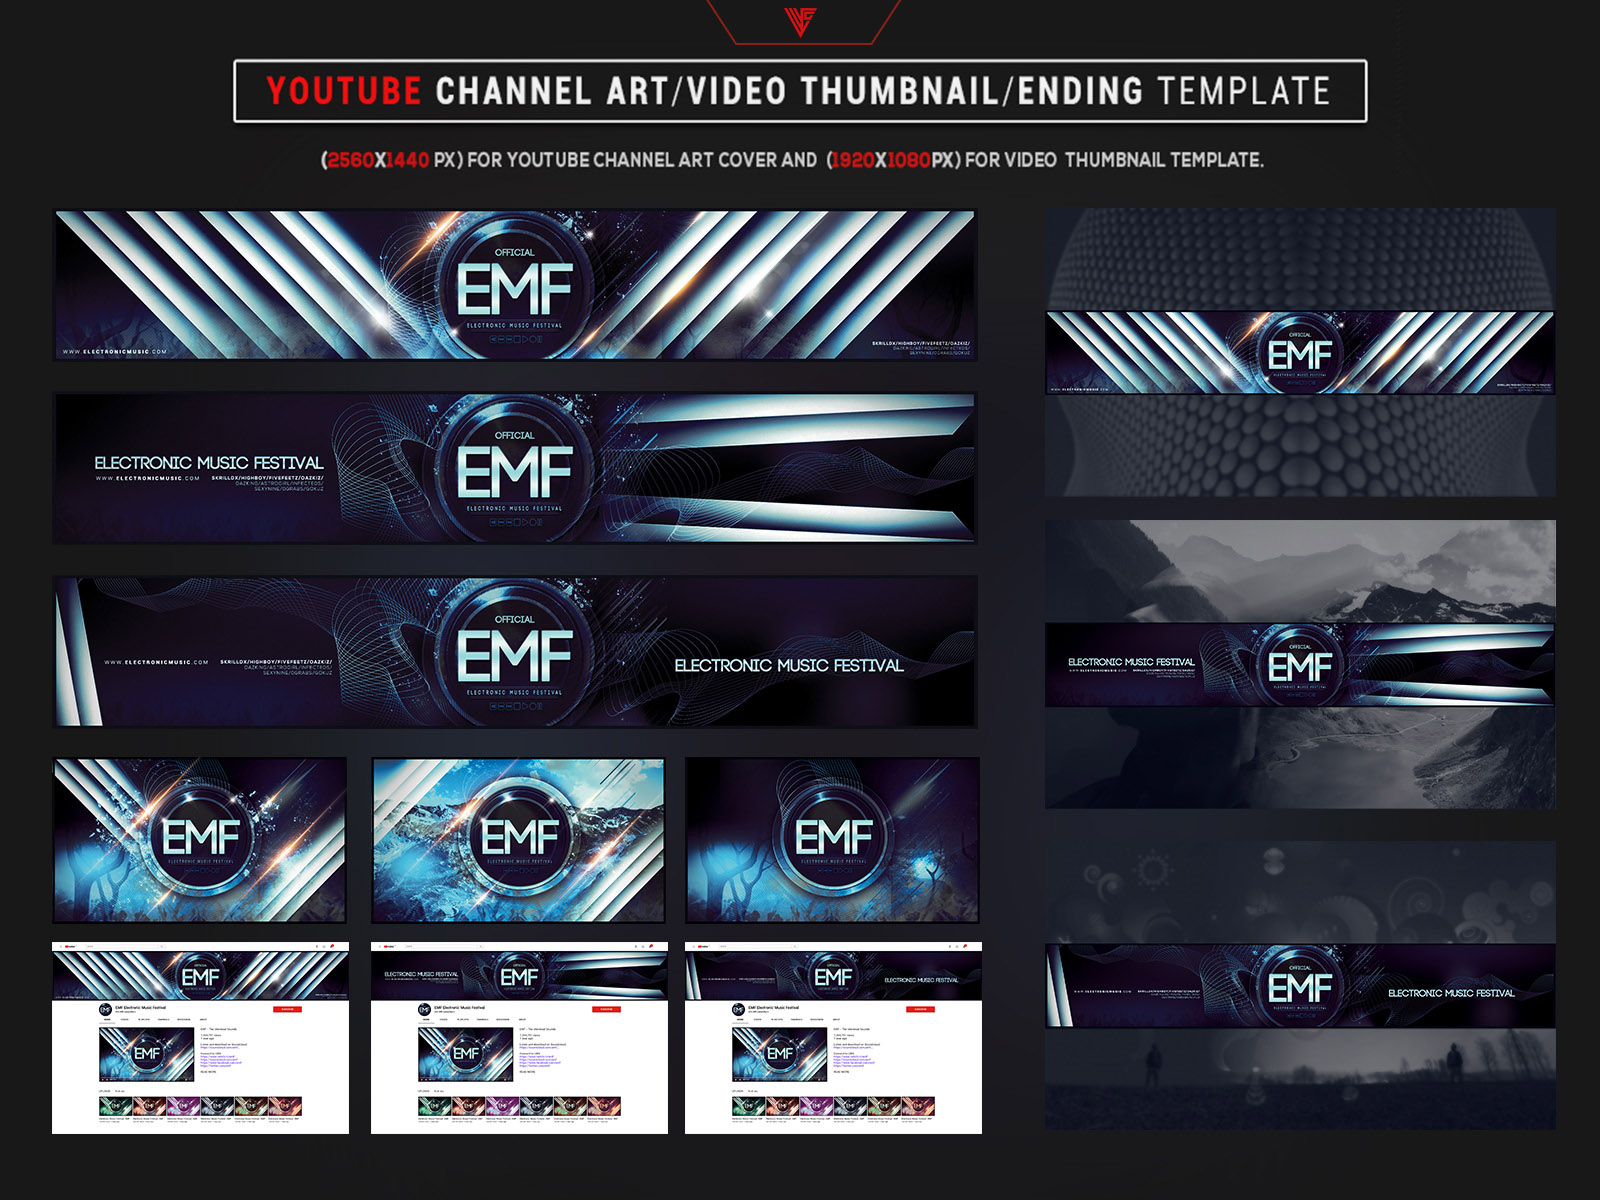 Photoshop Channel Art Template from cdn.dribbble.com